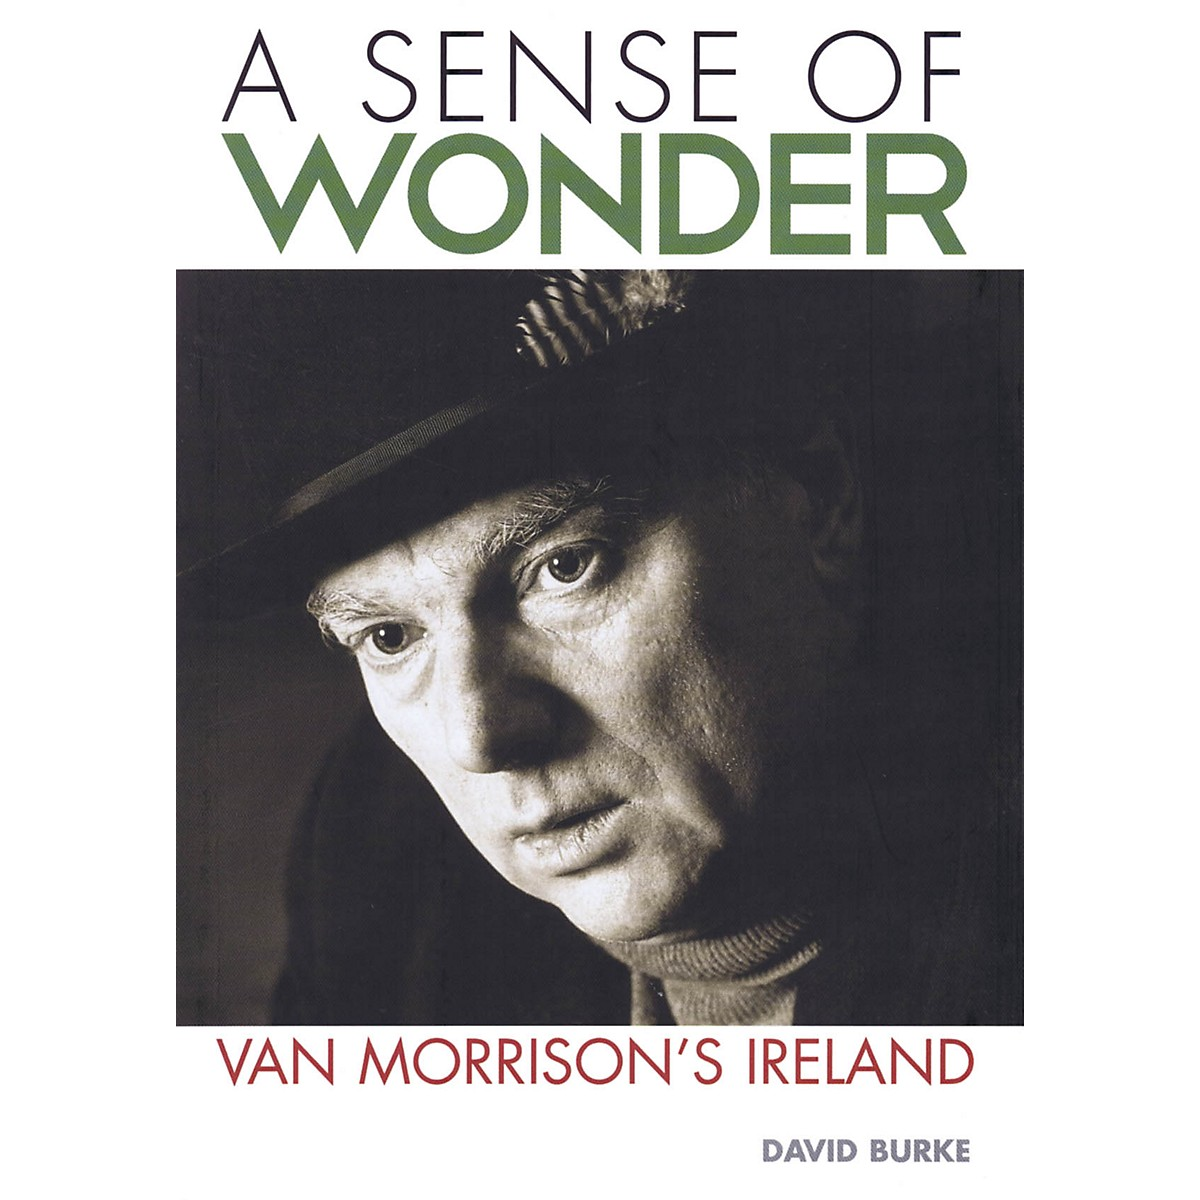 Jawbone Press A Sense of Wonder (Van Morrison's Ireland) Book Series Softcover Written by David Burke